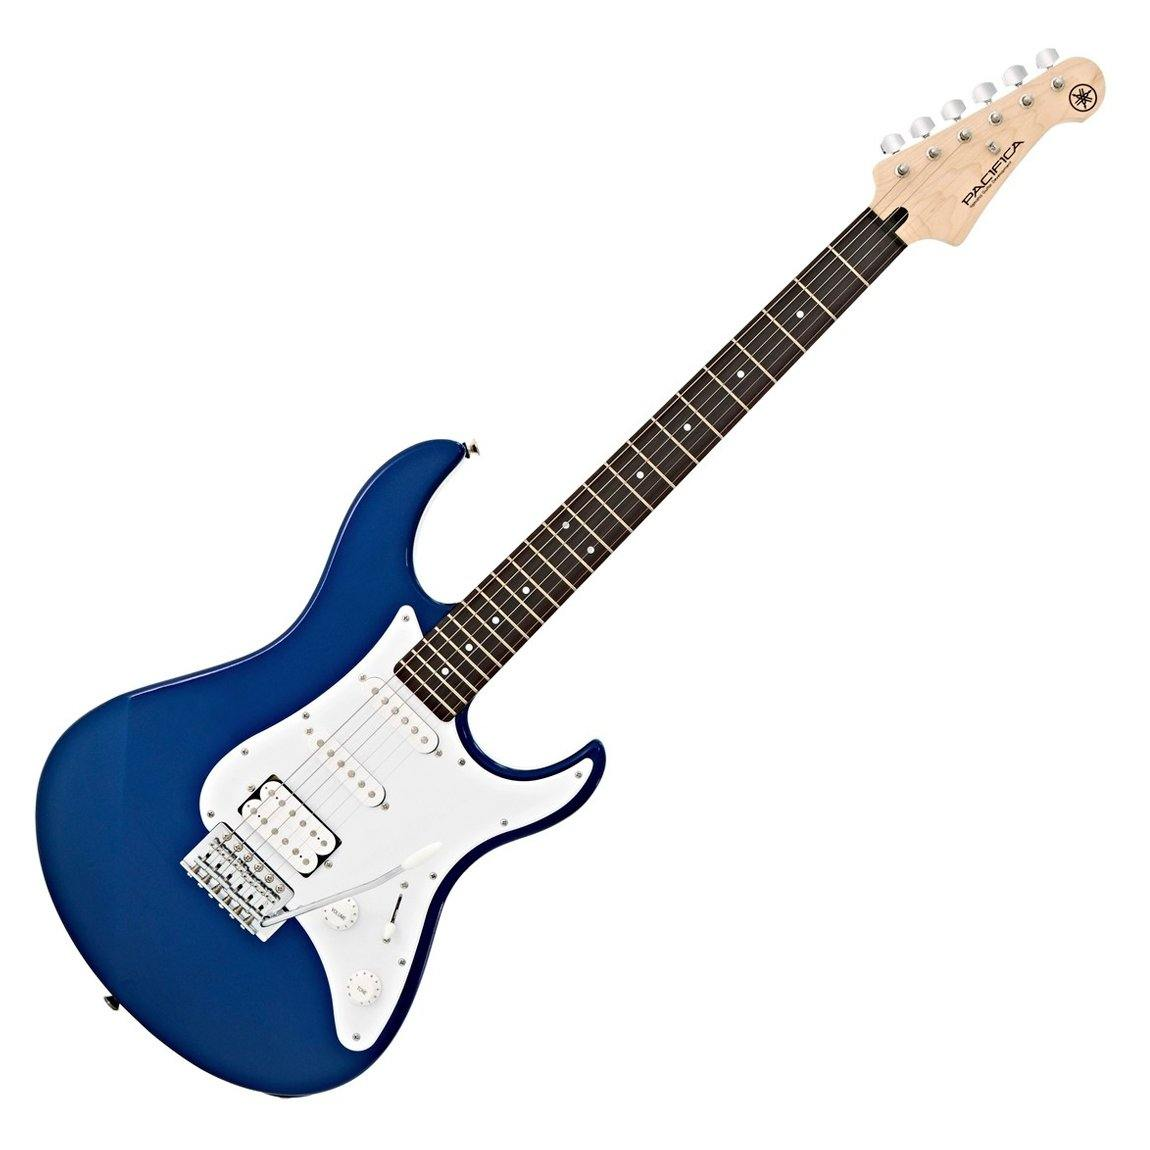 Yamaha Pacifica 012 Electric Guitar - ICONS Shop